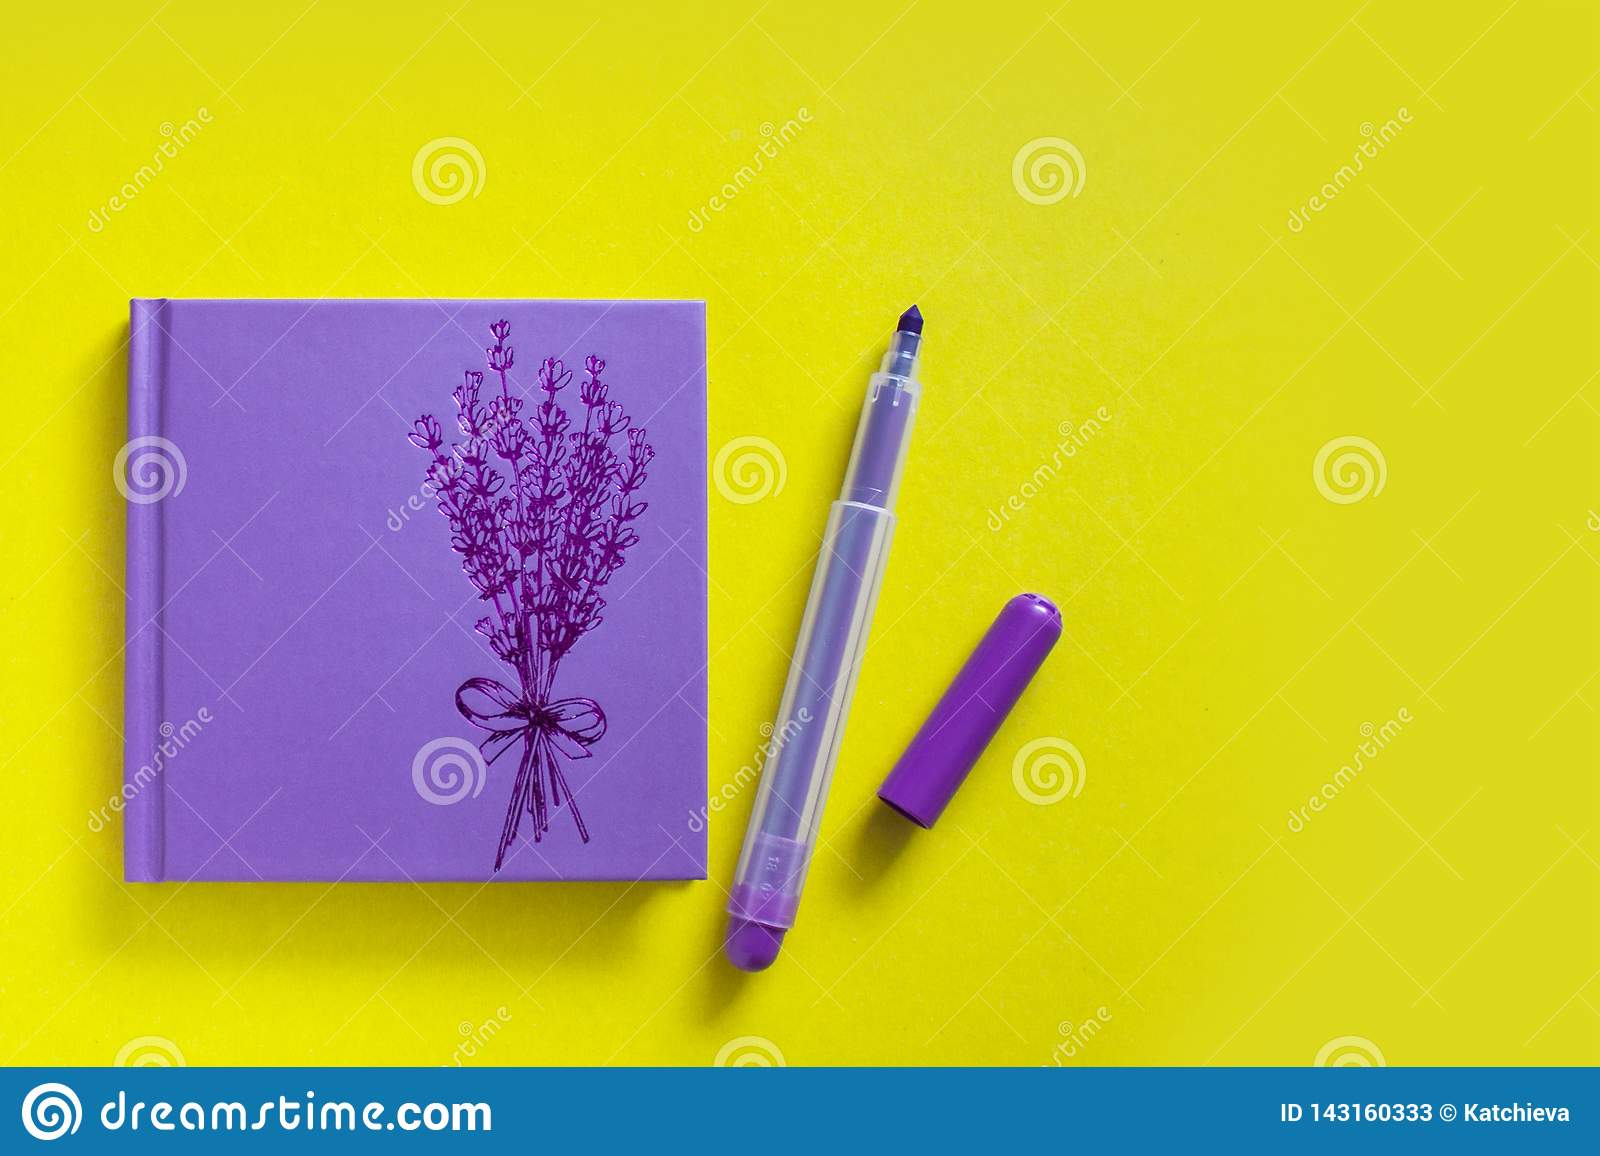 Lilac notepad with felt pen on yellow background